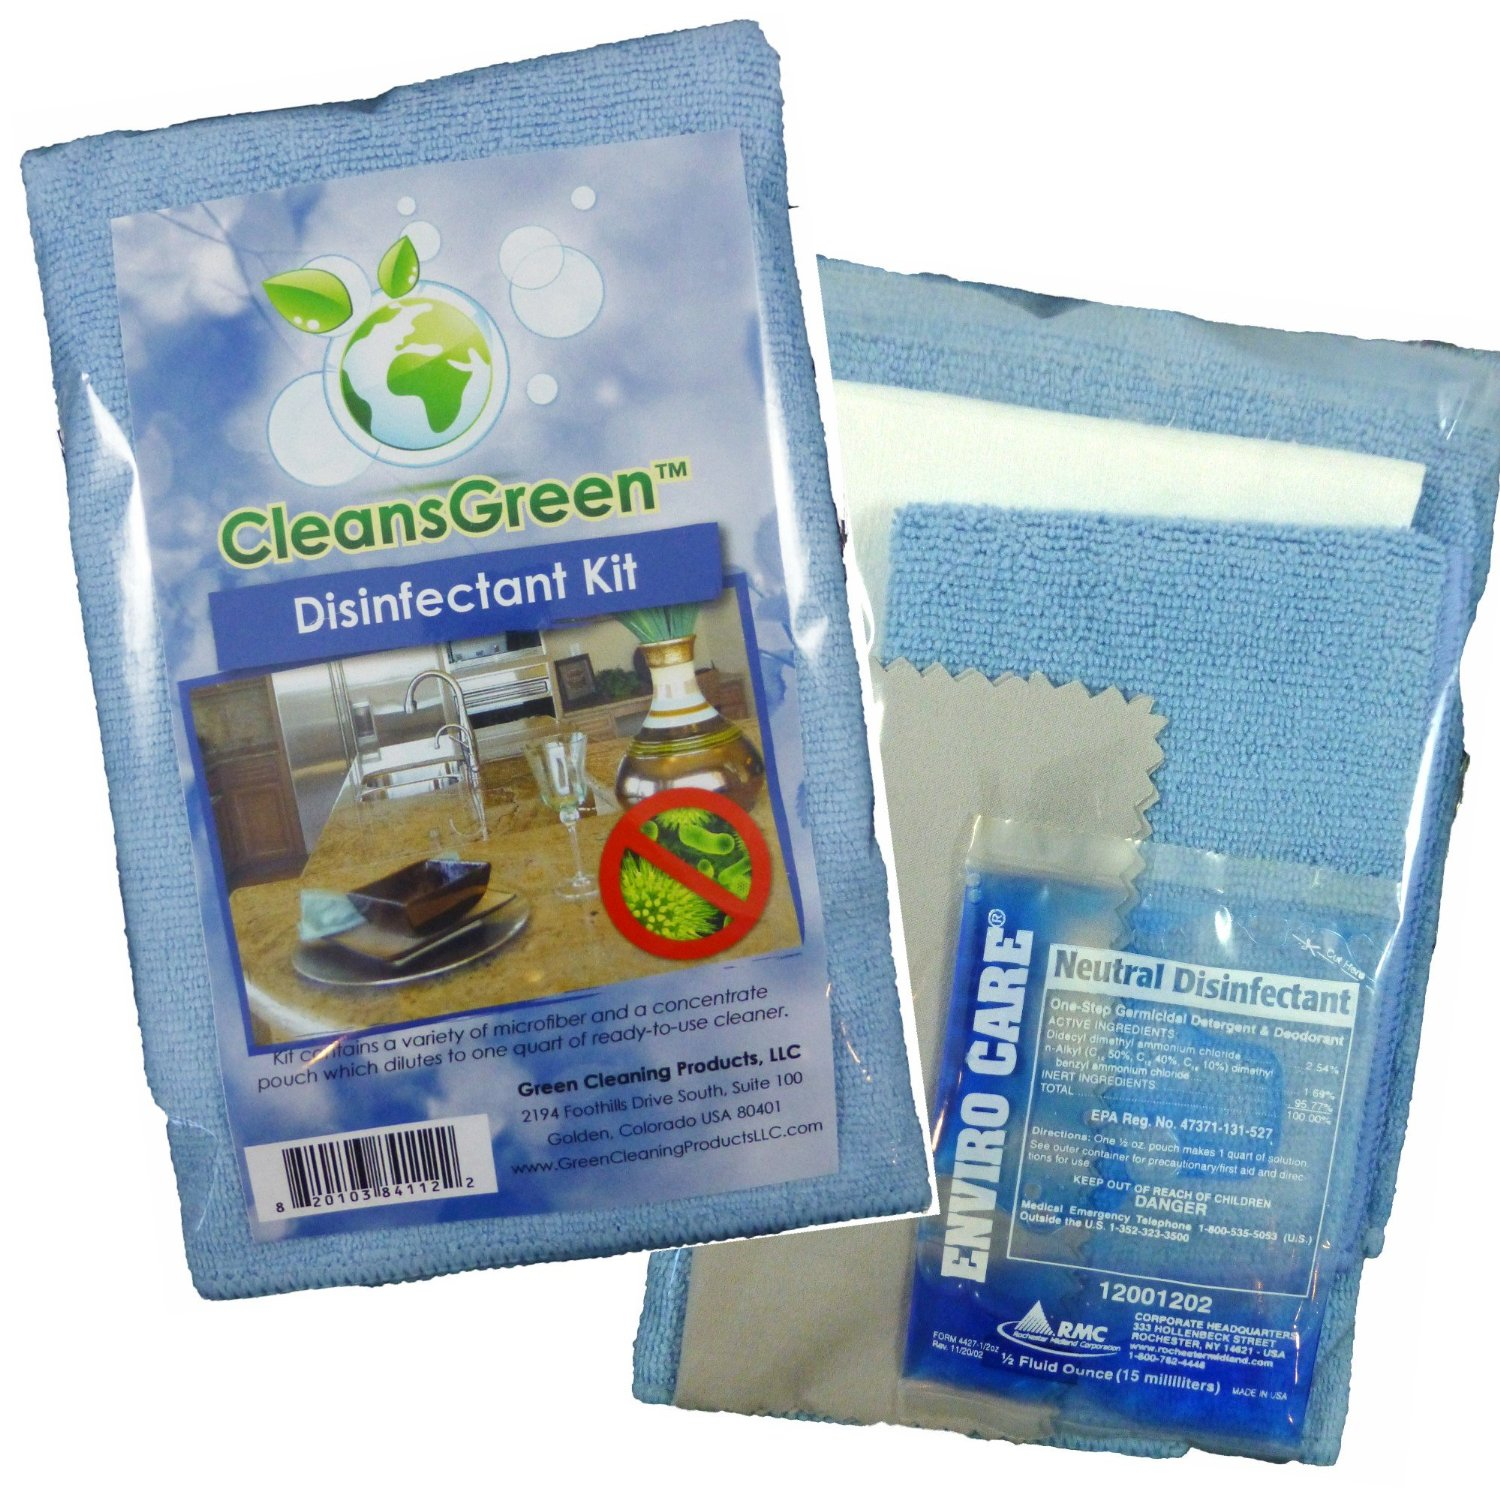 Kill The Germs Hospital Grade Disinfectant Cleaner Reusable Disinfecting Wipes Kit Greencleaning Babysafe Petsafe Http Www Amazon Com Dis Green Cleaning